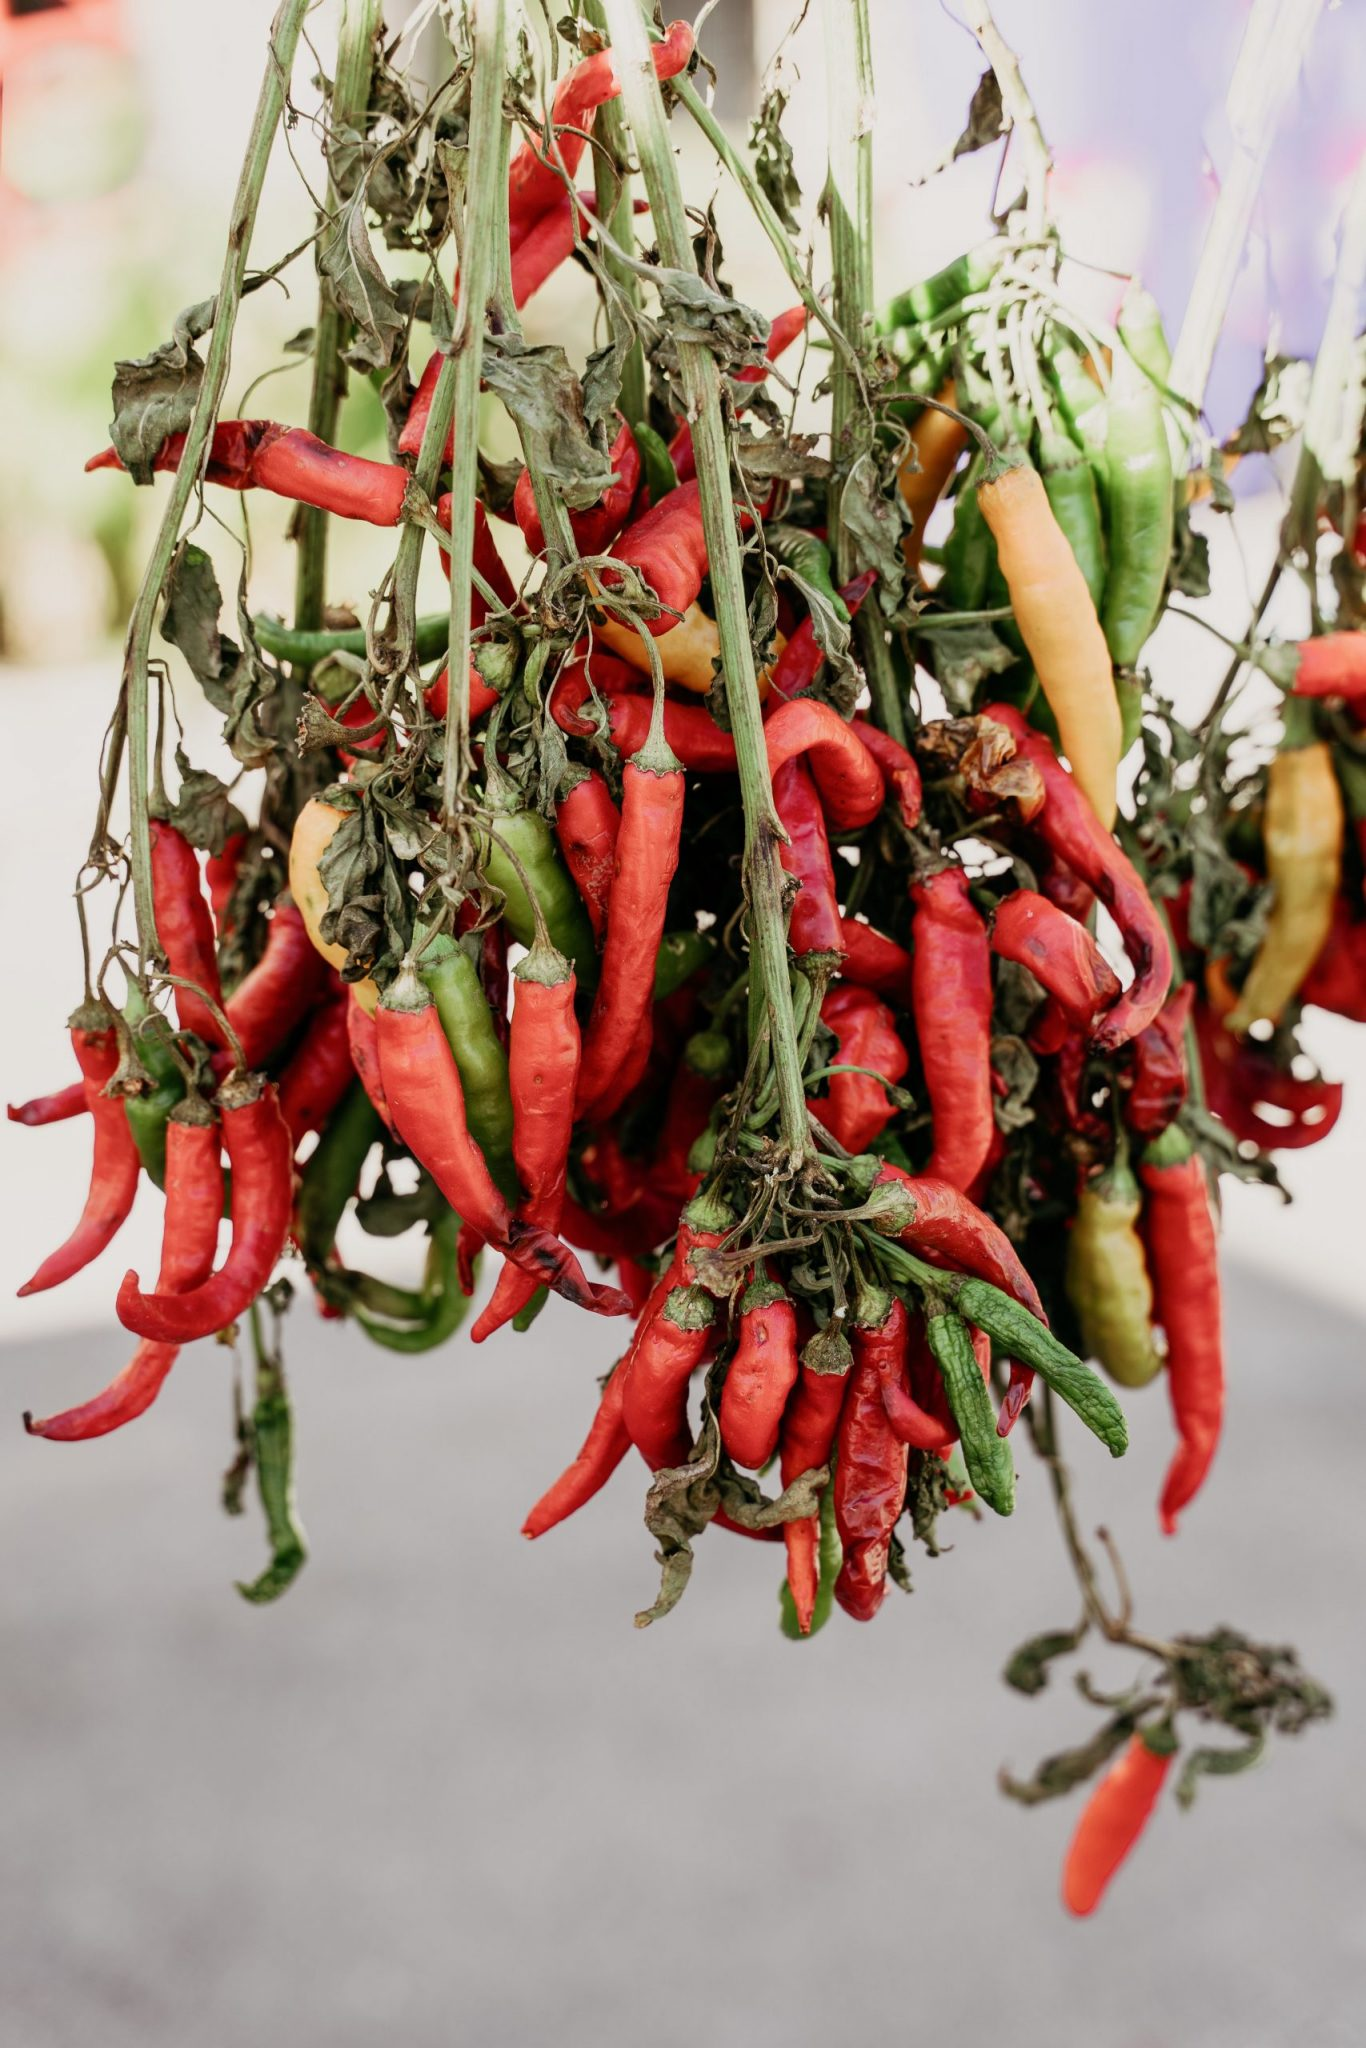 A photo of chilis from Italy